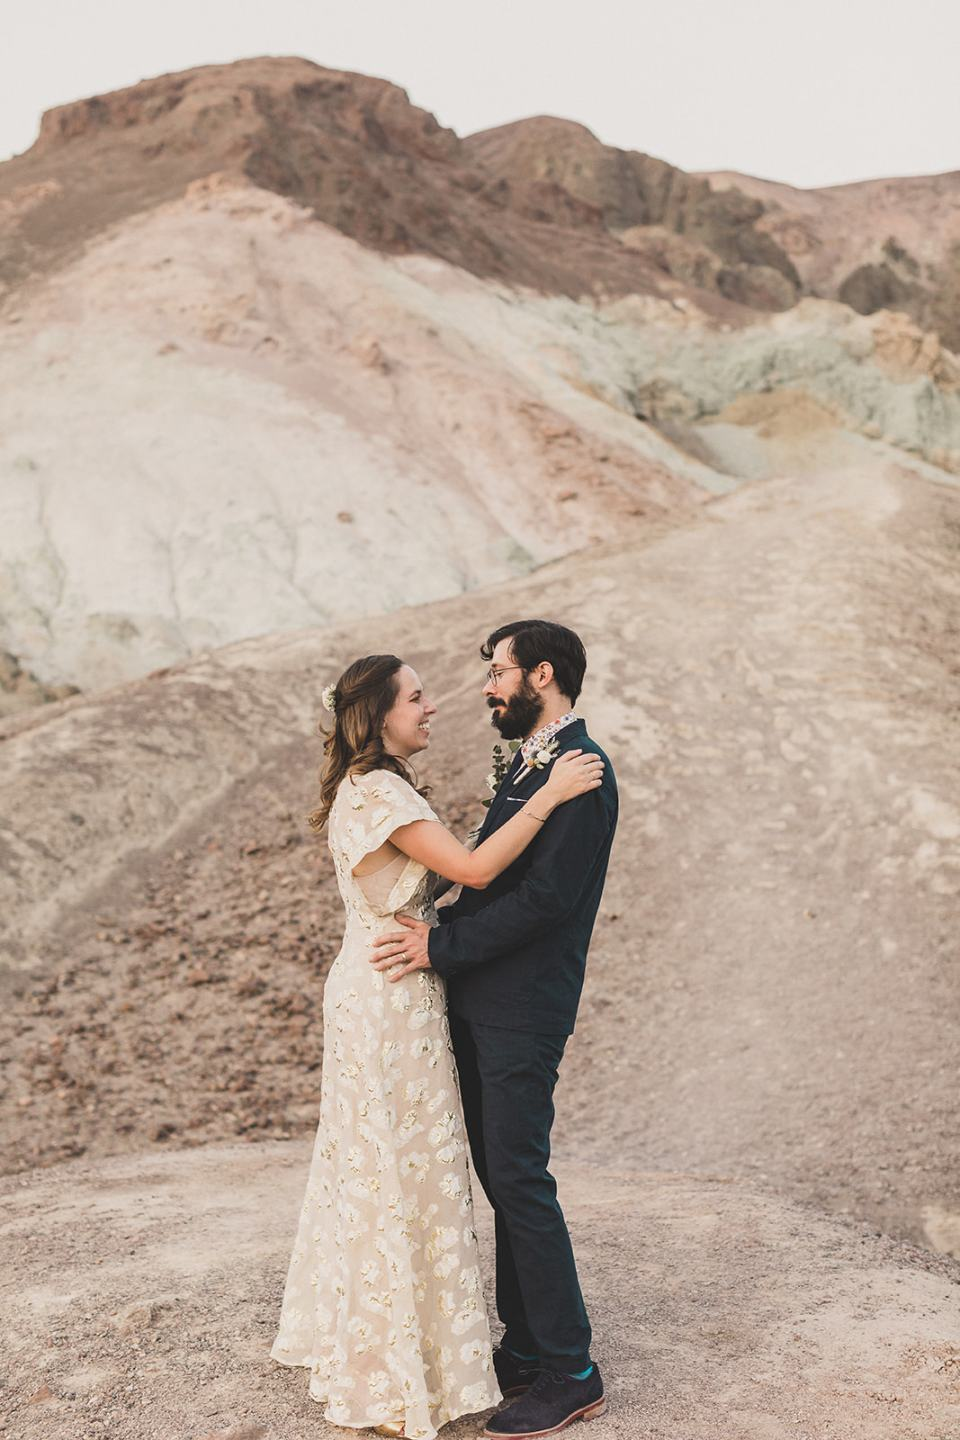 newlyweds dance in front of hills at Zabriskie Point